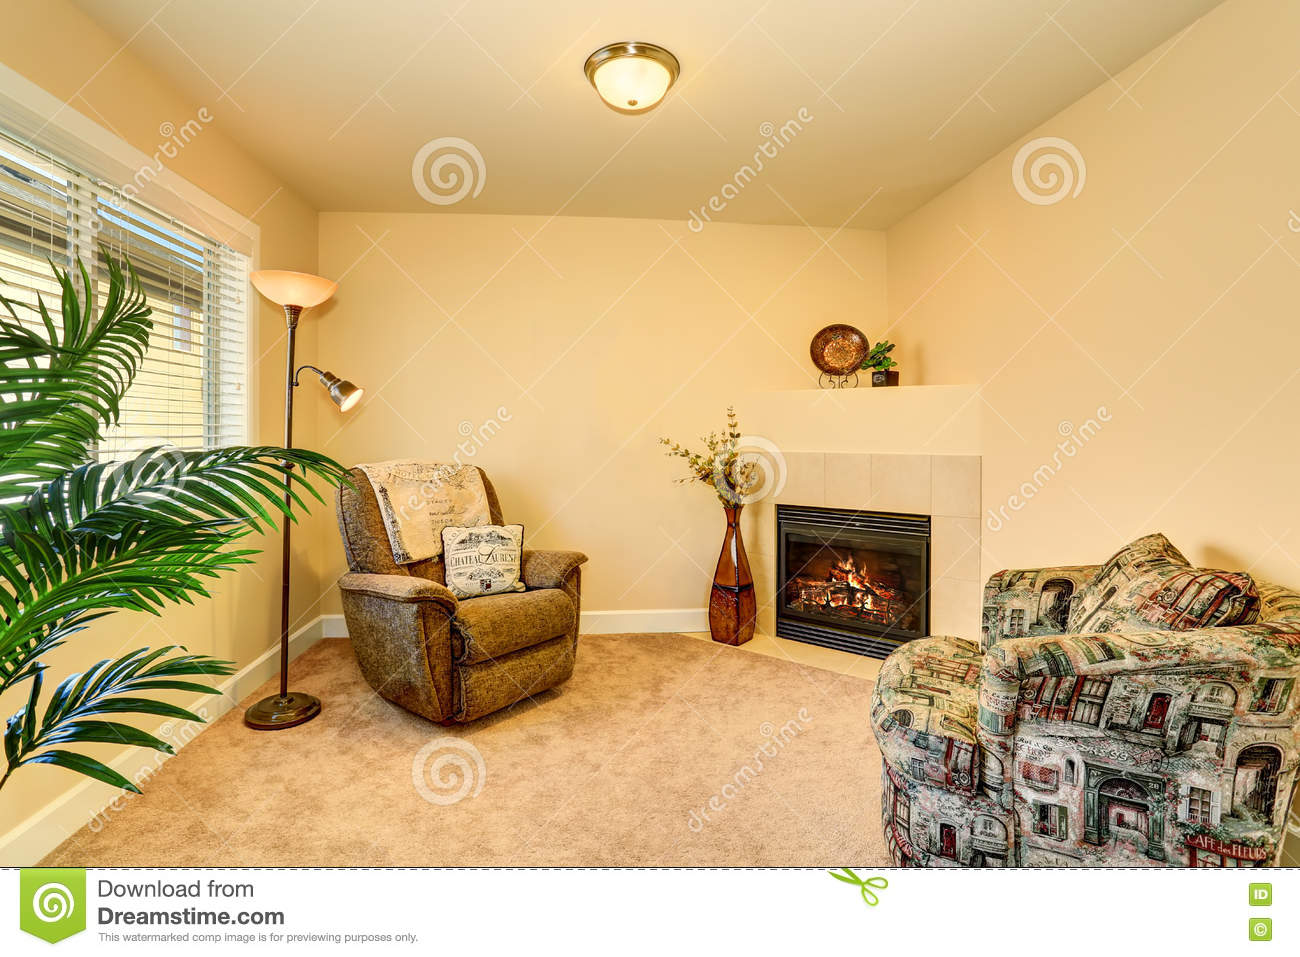 Cozy Family Room Interior With Two Armchairs And Fireplace Stock ...